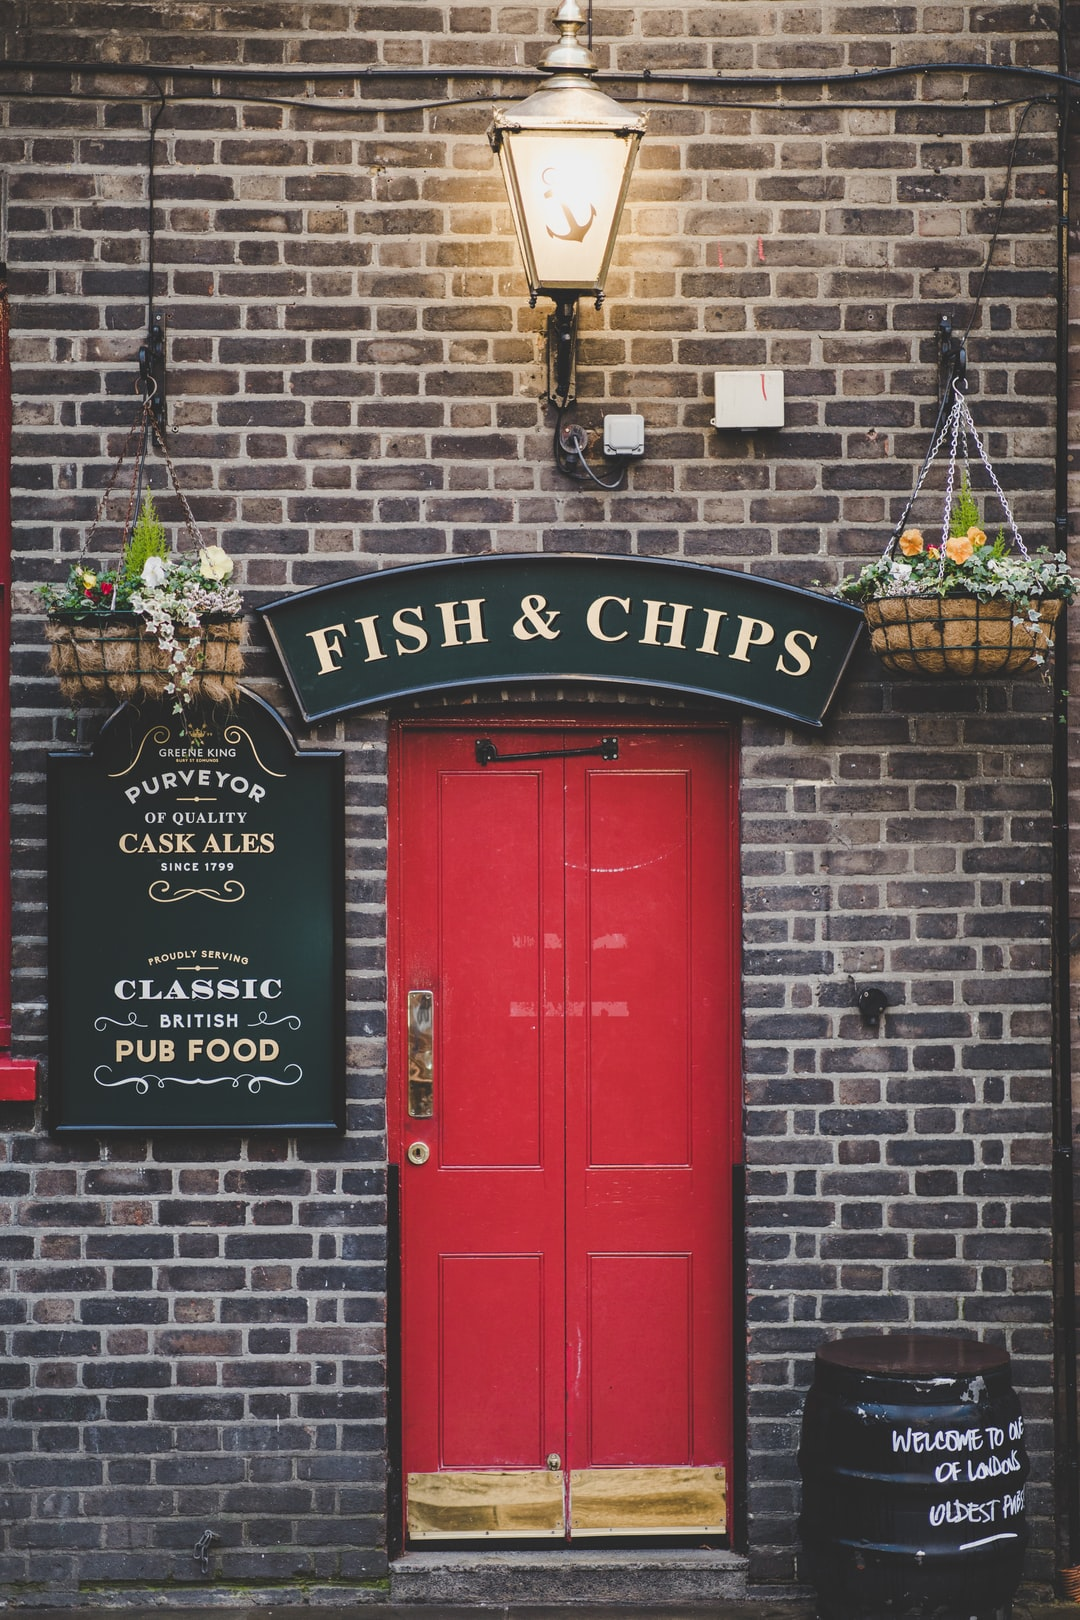 Fish & Chips in London